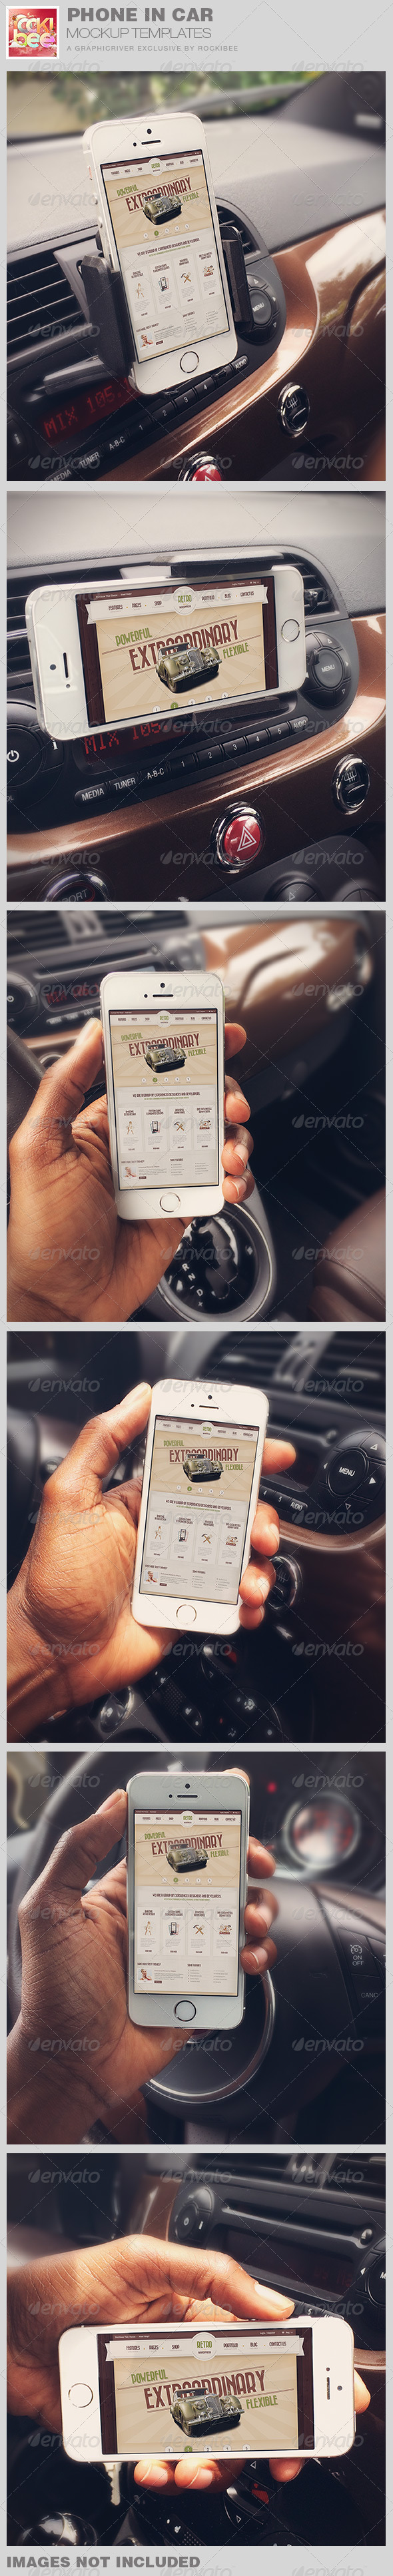 Smart Phone in Car Mockup Templates